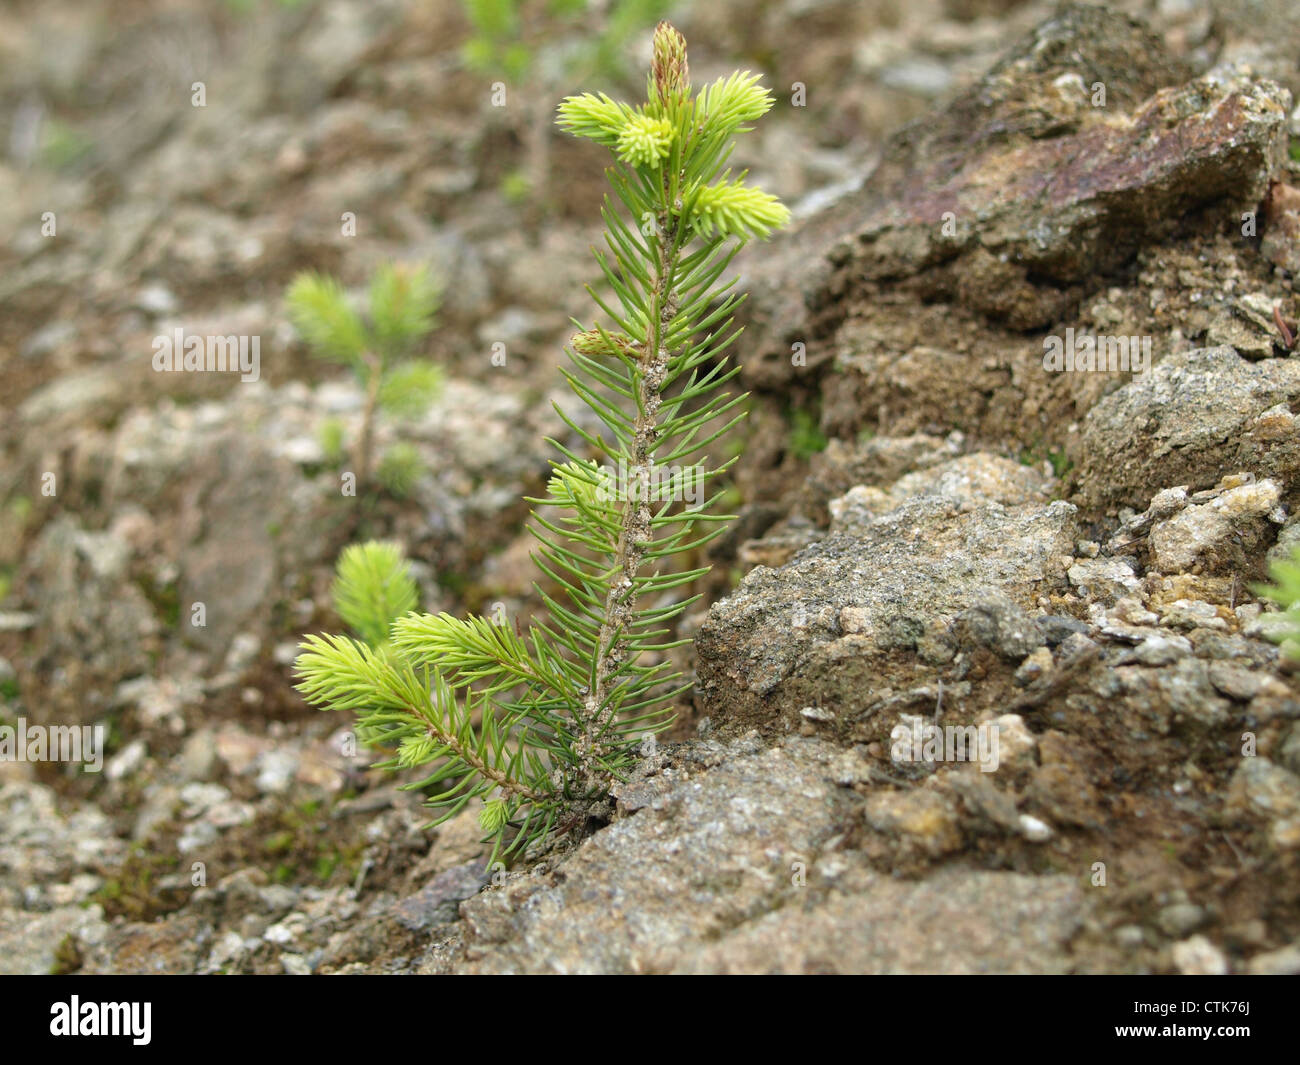 young spruce on stony ground / junge Fichte auf steinigem Boden - Stock Image